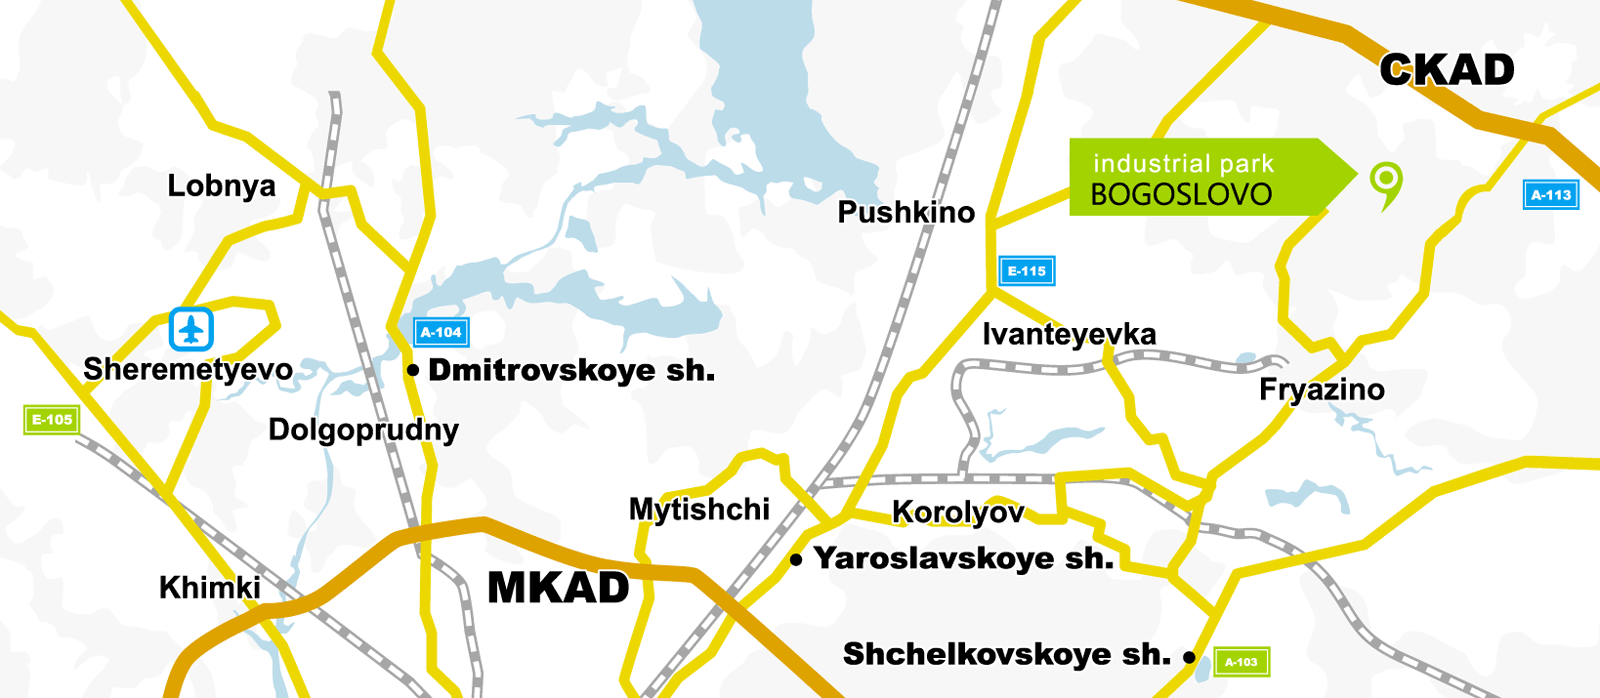 Route map to Bogoslovo industrial park